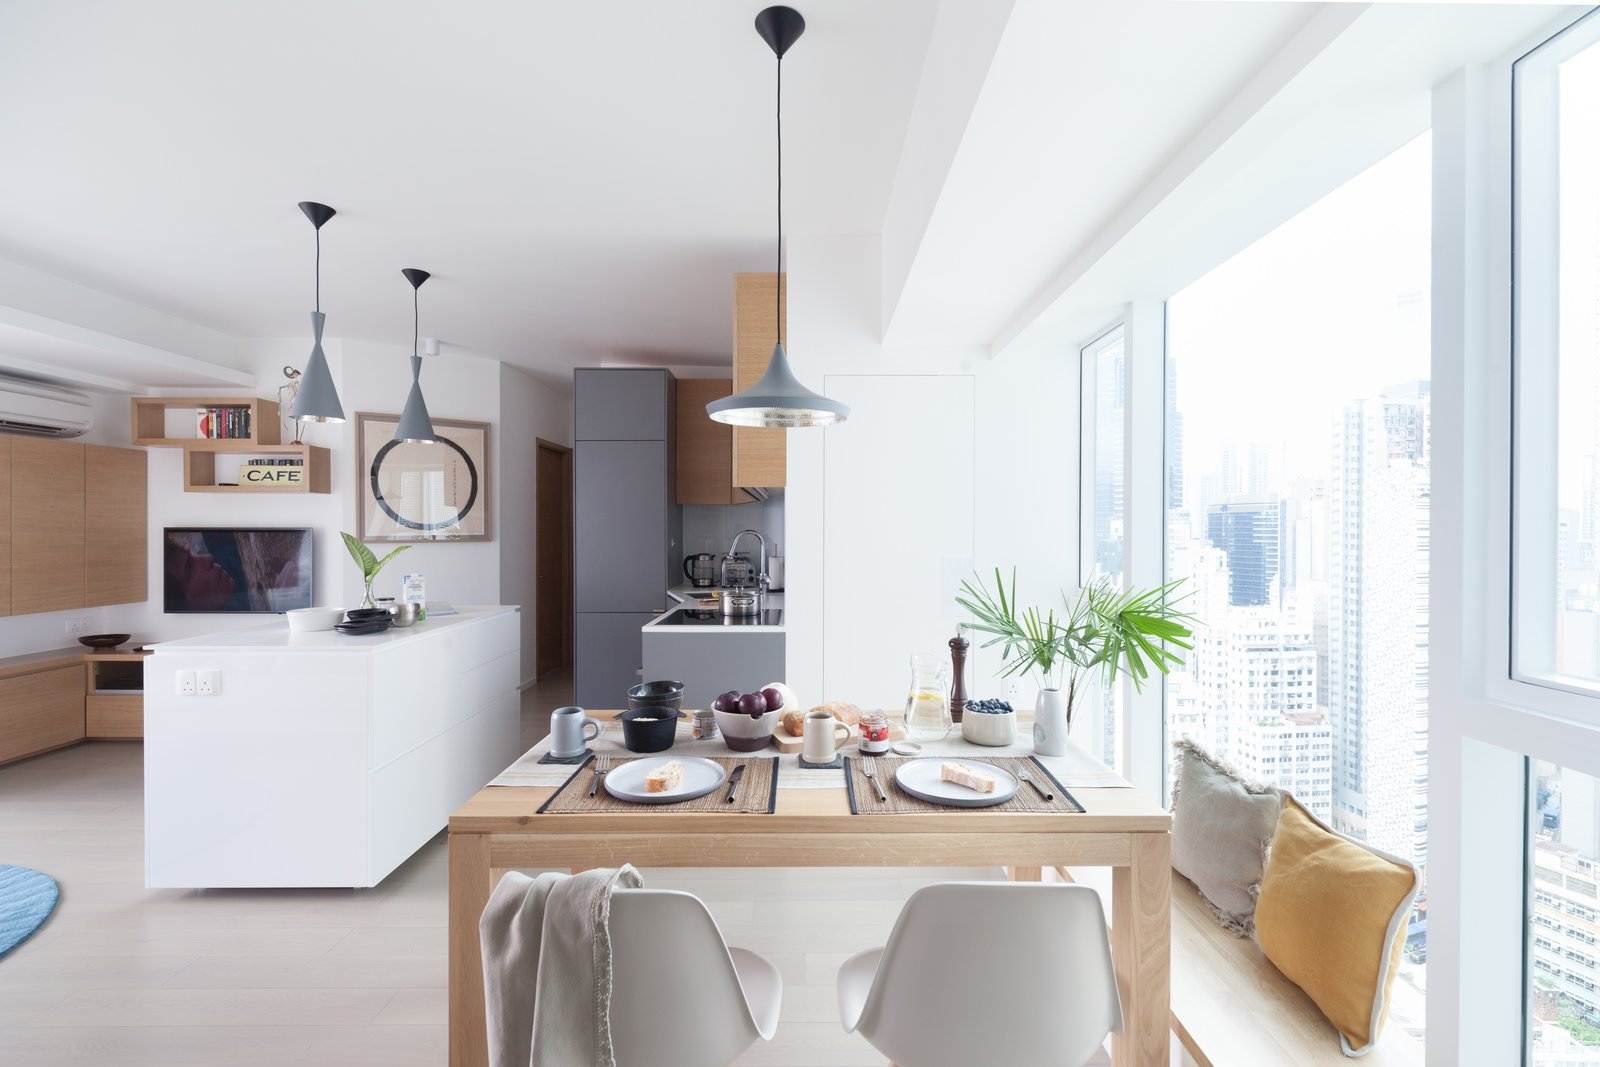 Dining Room, Table, Bench, Pendant Lighting, Storage, Light Hardwood Floor, and Chair http://www.cliftonleungdesignworkshop.com/Cherry+Crest+B  Cherry Crest by Clifton Leung